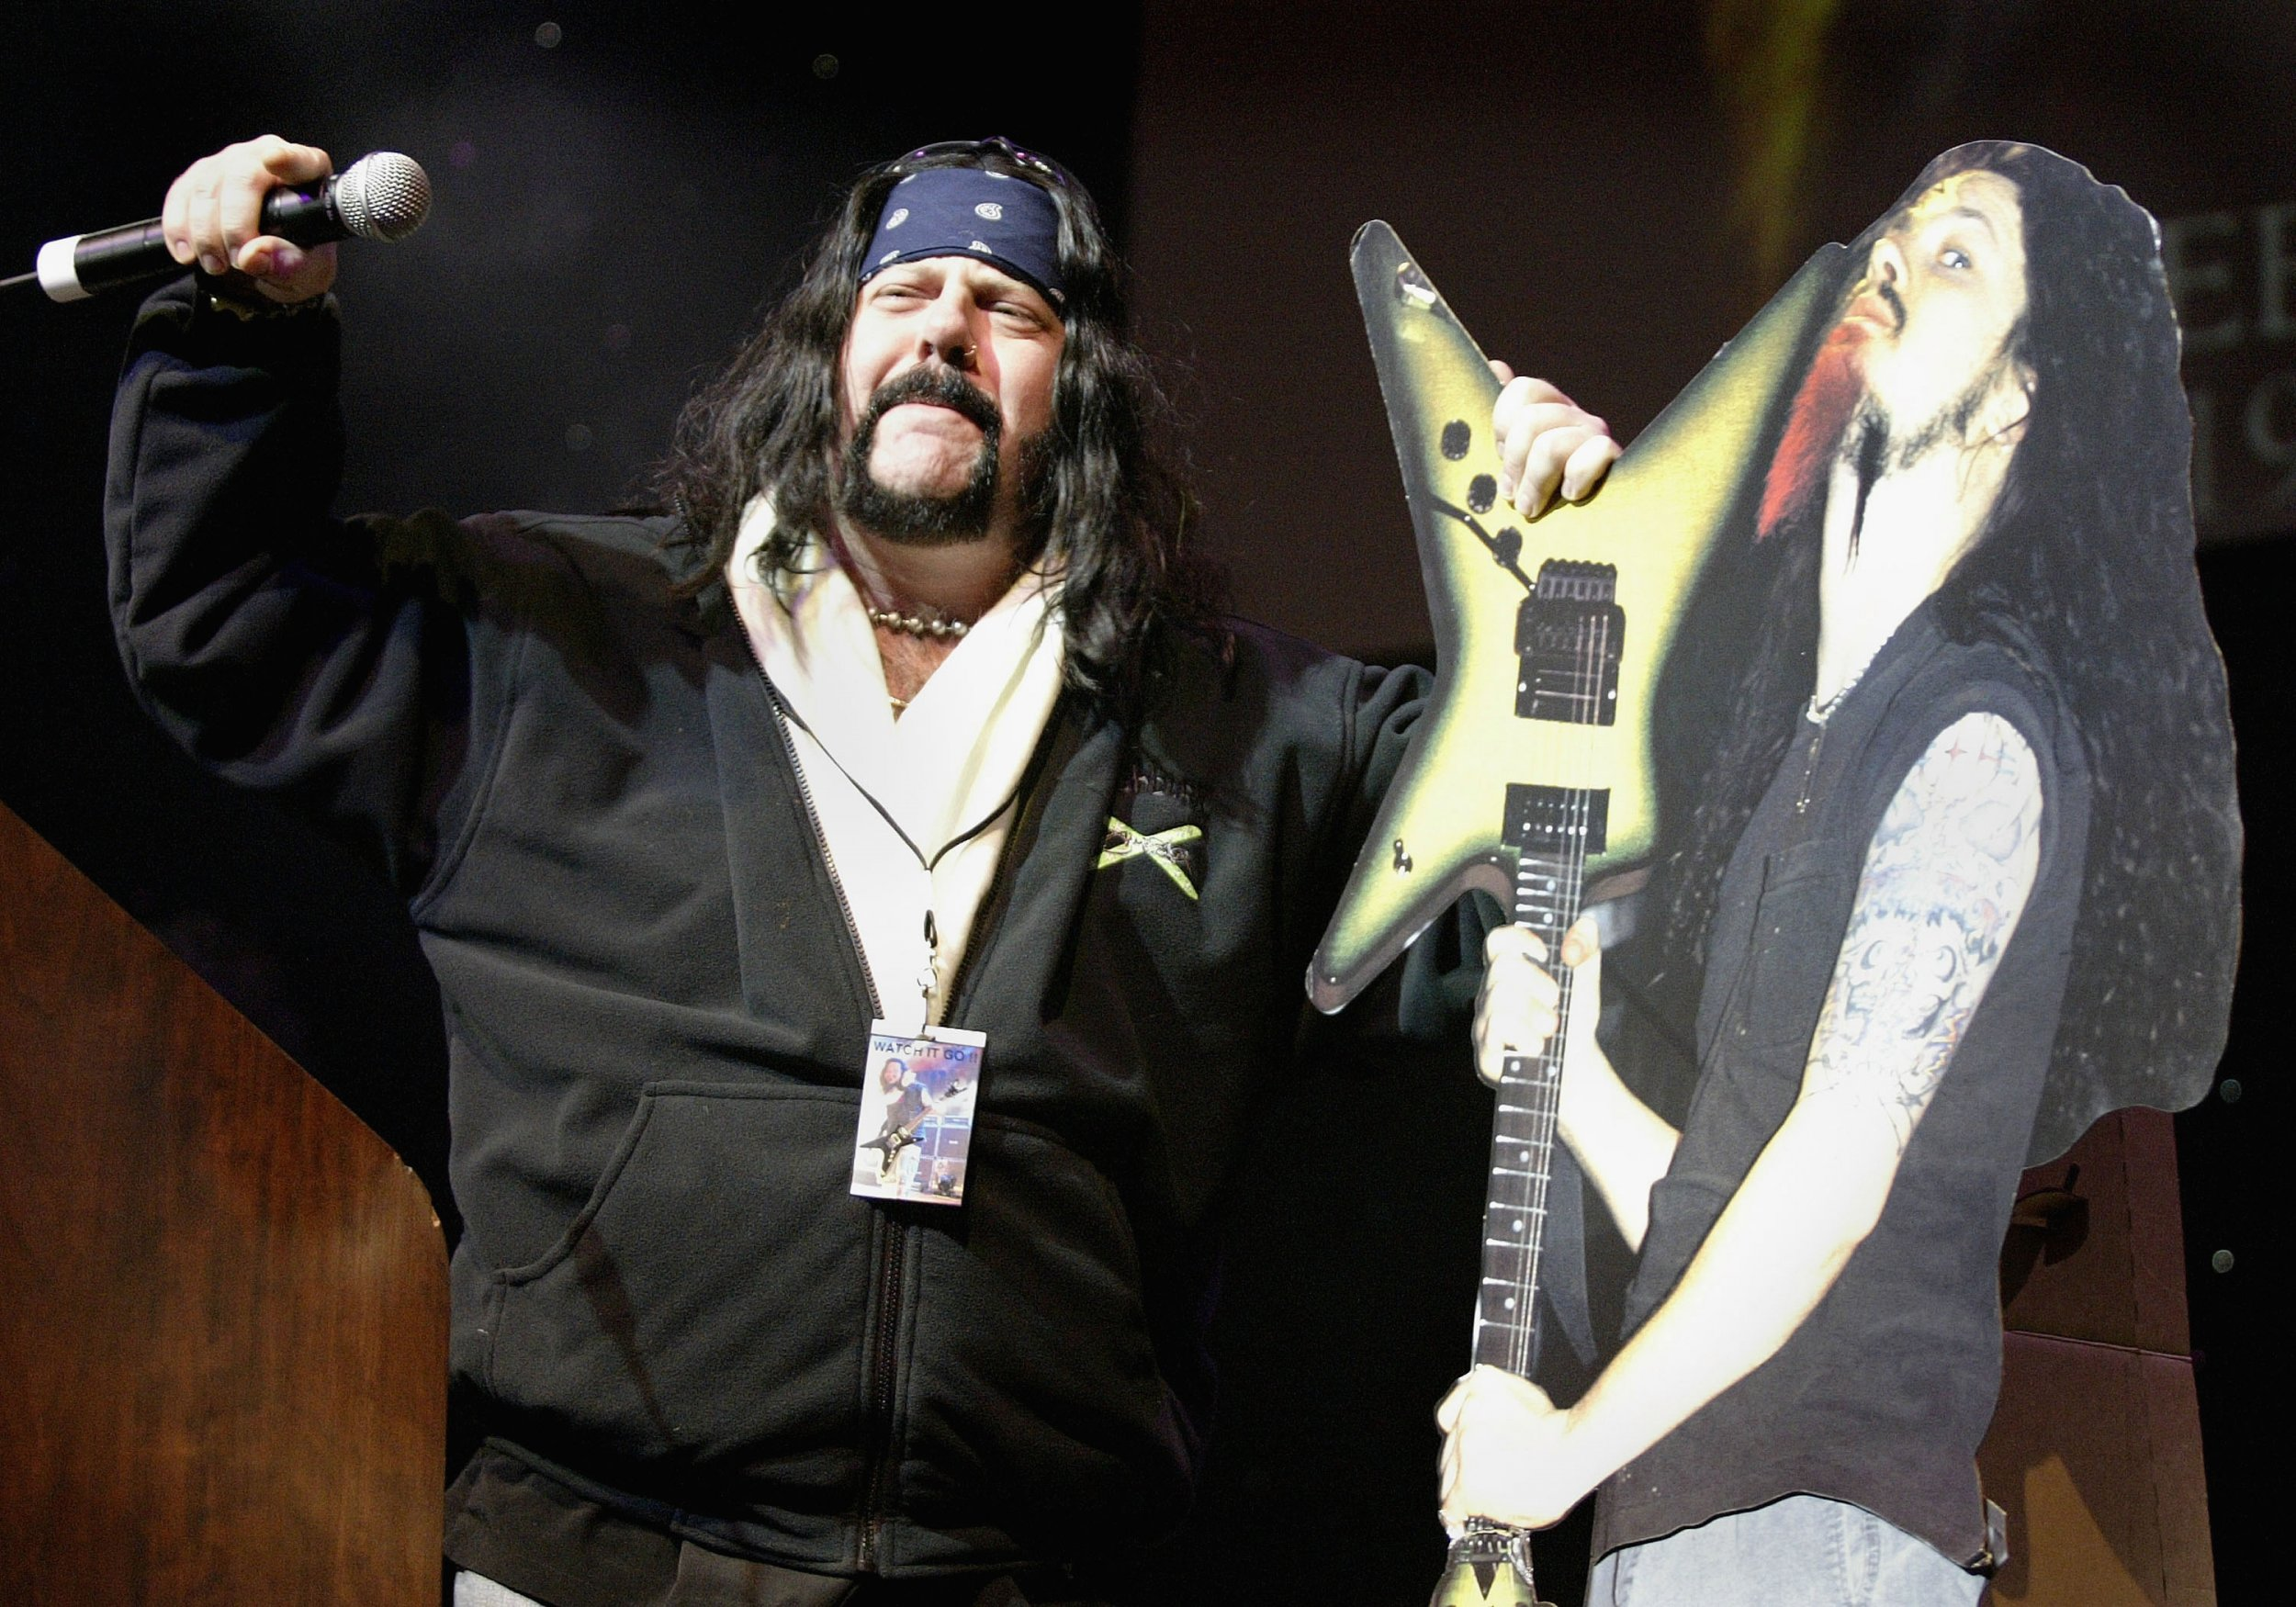 06_23_Vinnie_paul